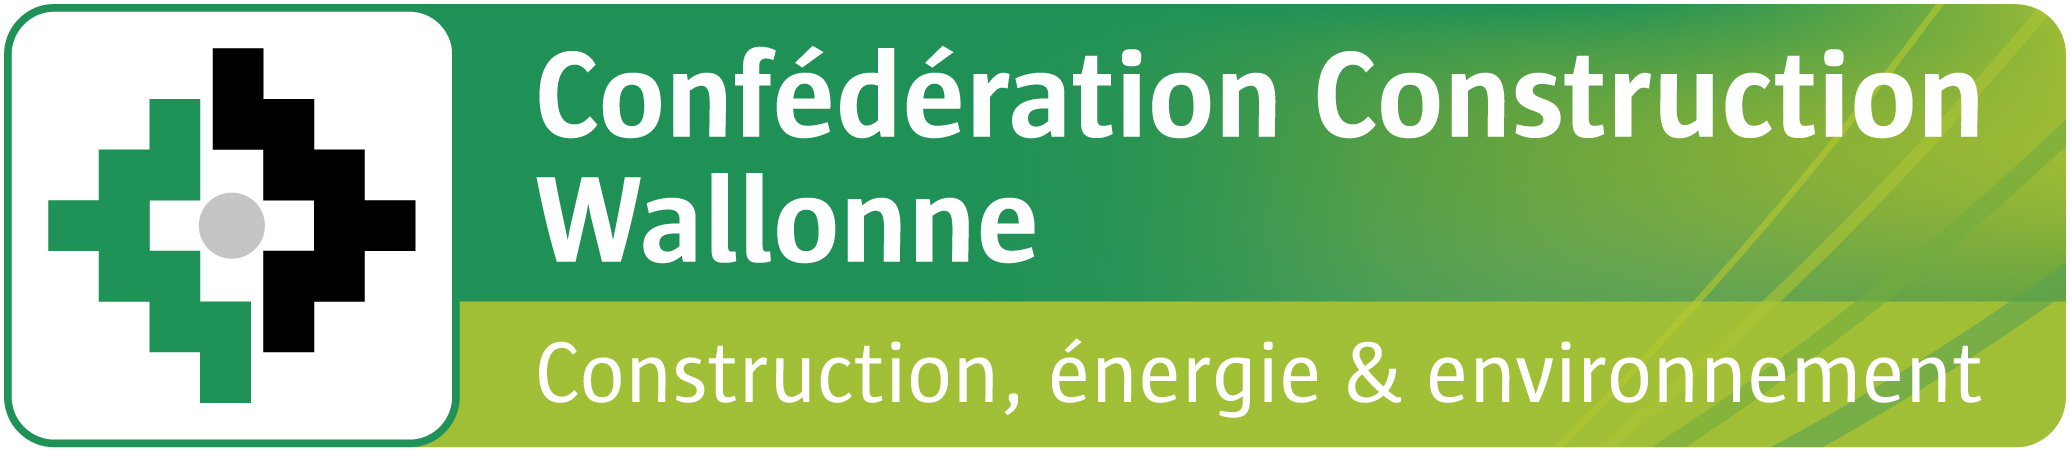 logo confederation construction wallonne